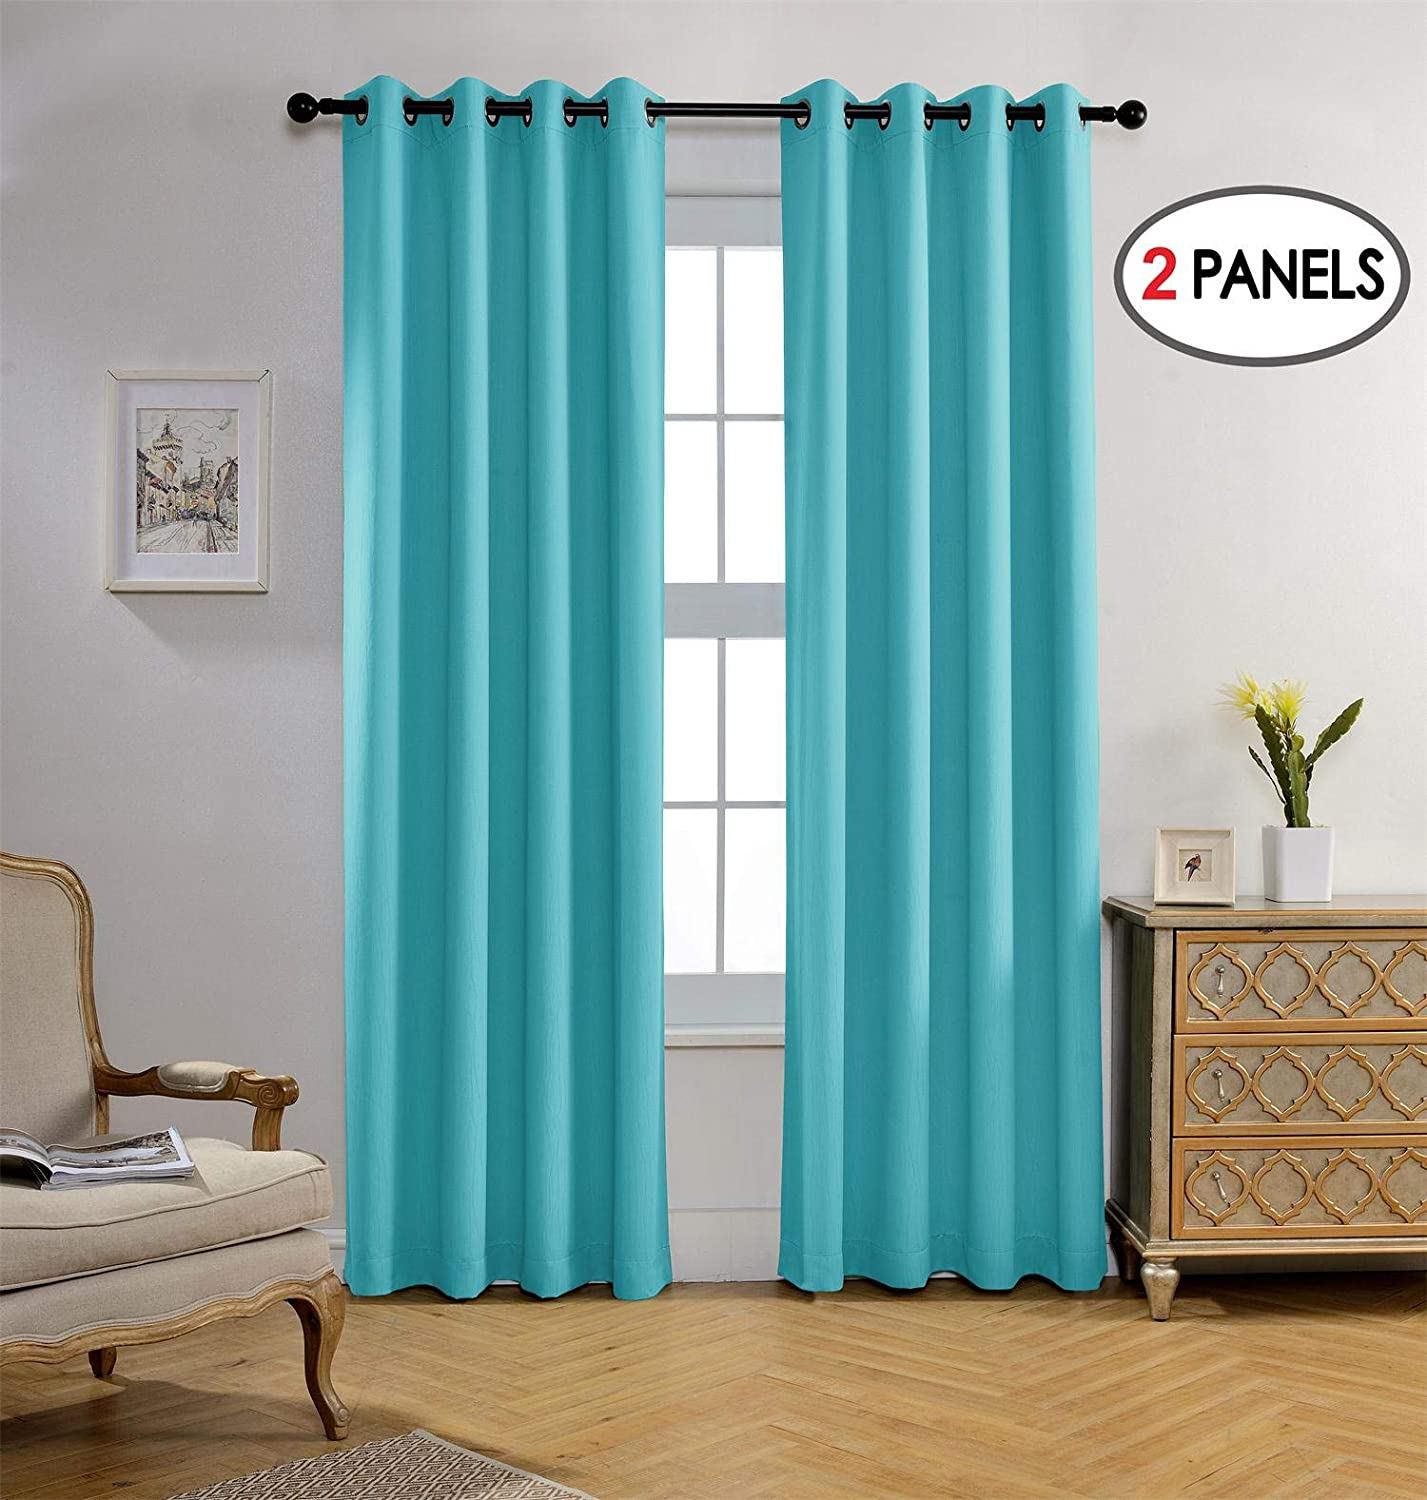 MIUCO Room Darkening Curtains Textured Grommet Thermal Insulated Blackout Curtains for Bedroom Set of 2 52x95 Inch Turquoise